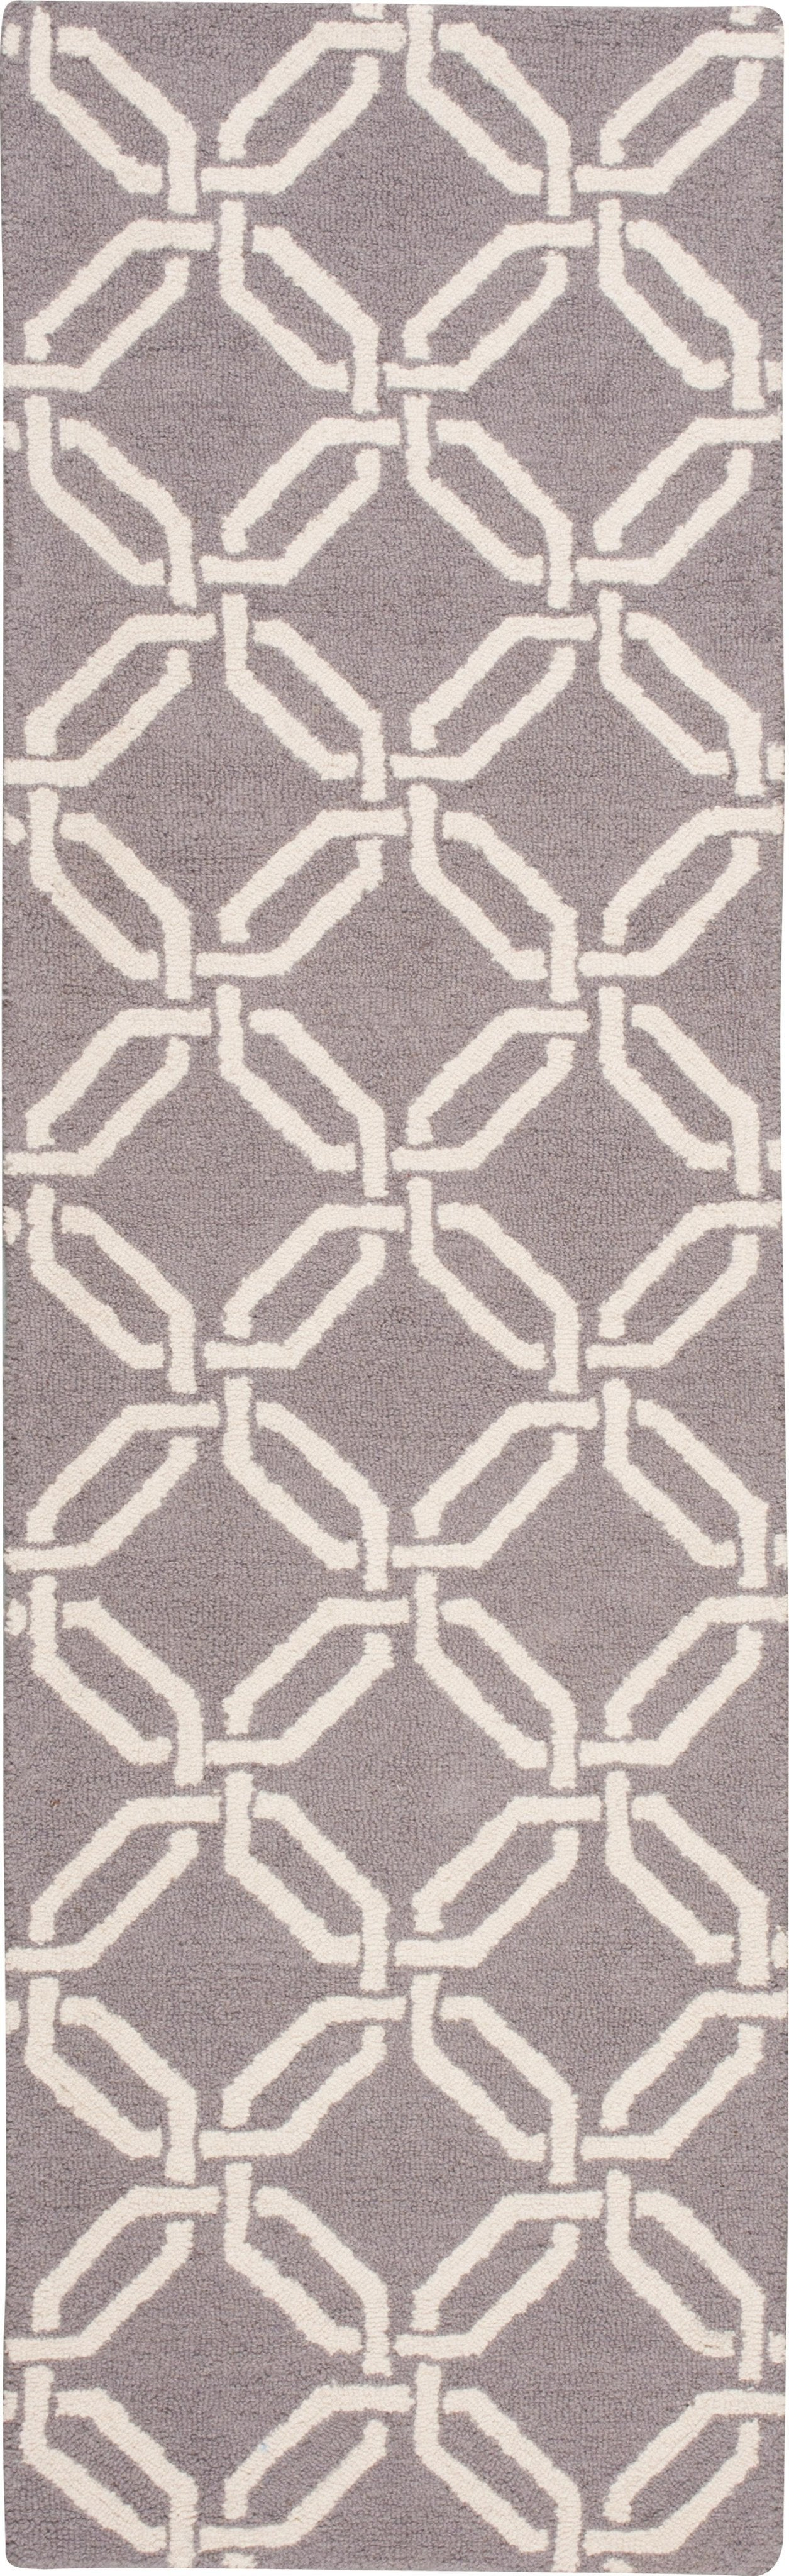 "Linear Silver Rug - 5 Size Options Rugs Nourison 2'3"" x 7'6"" Runner"